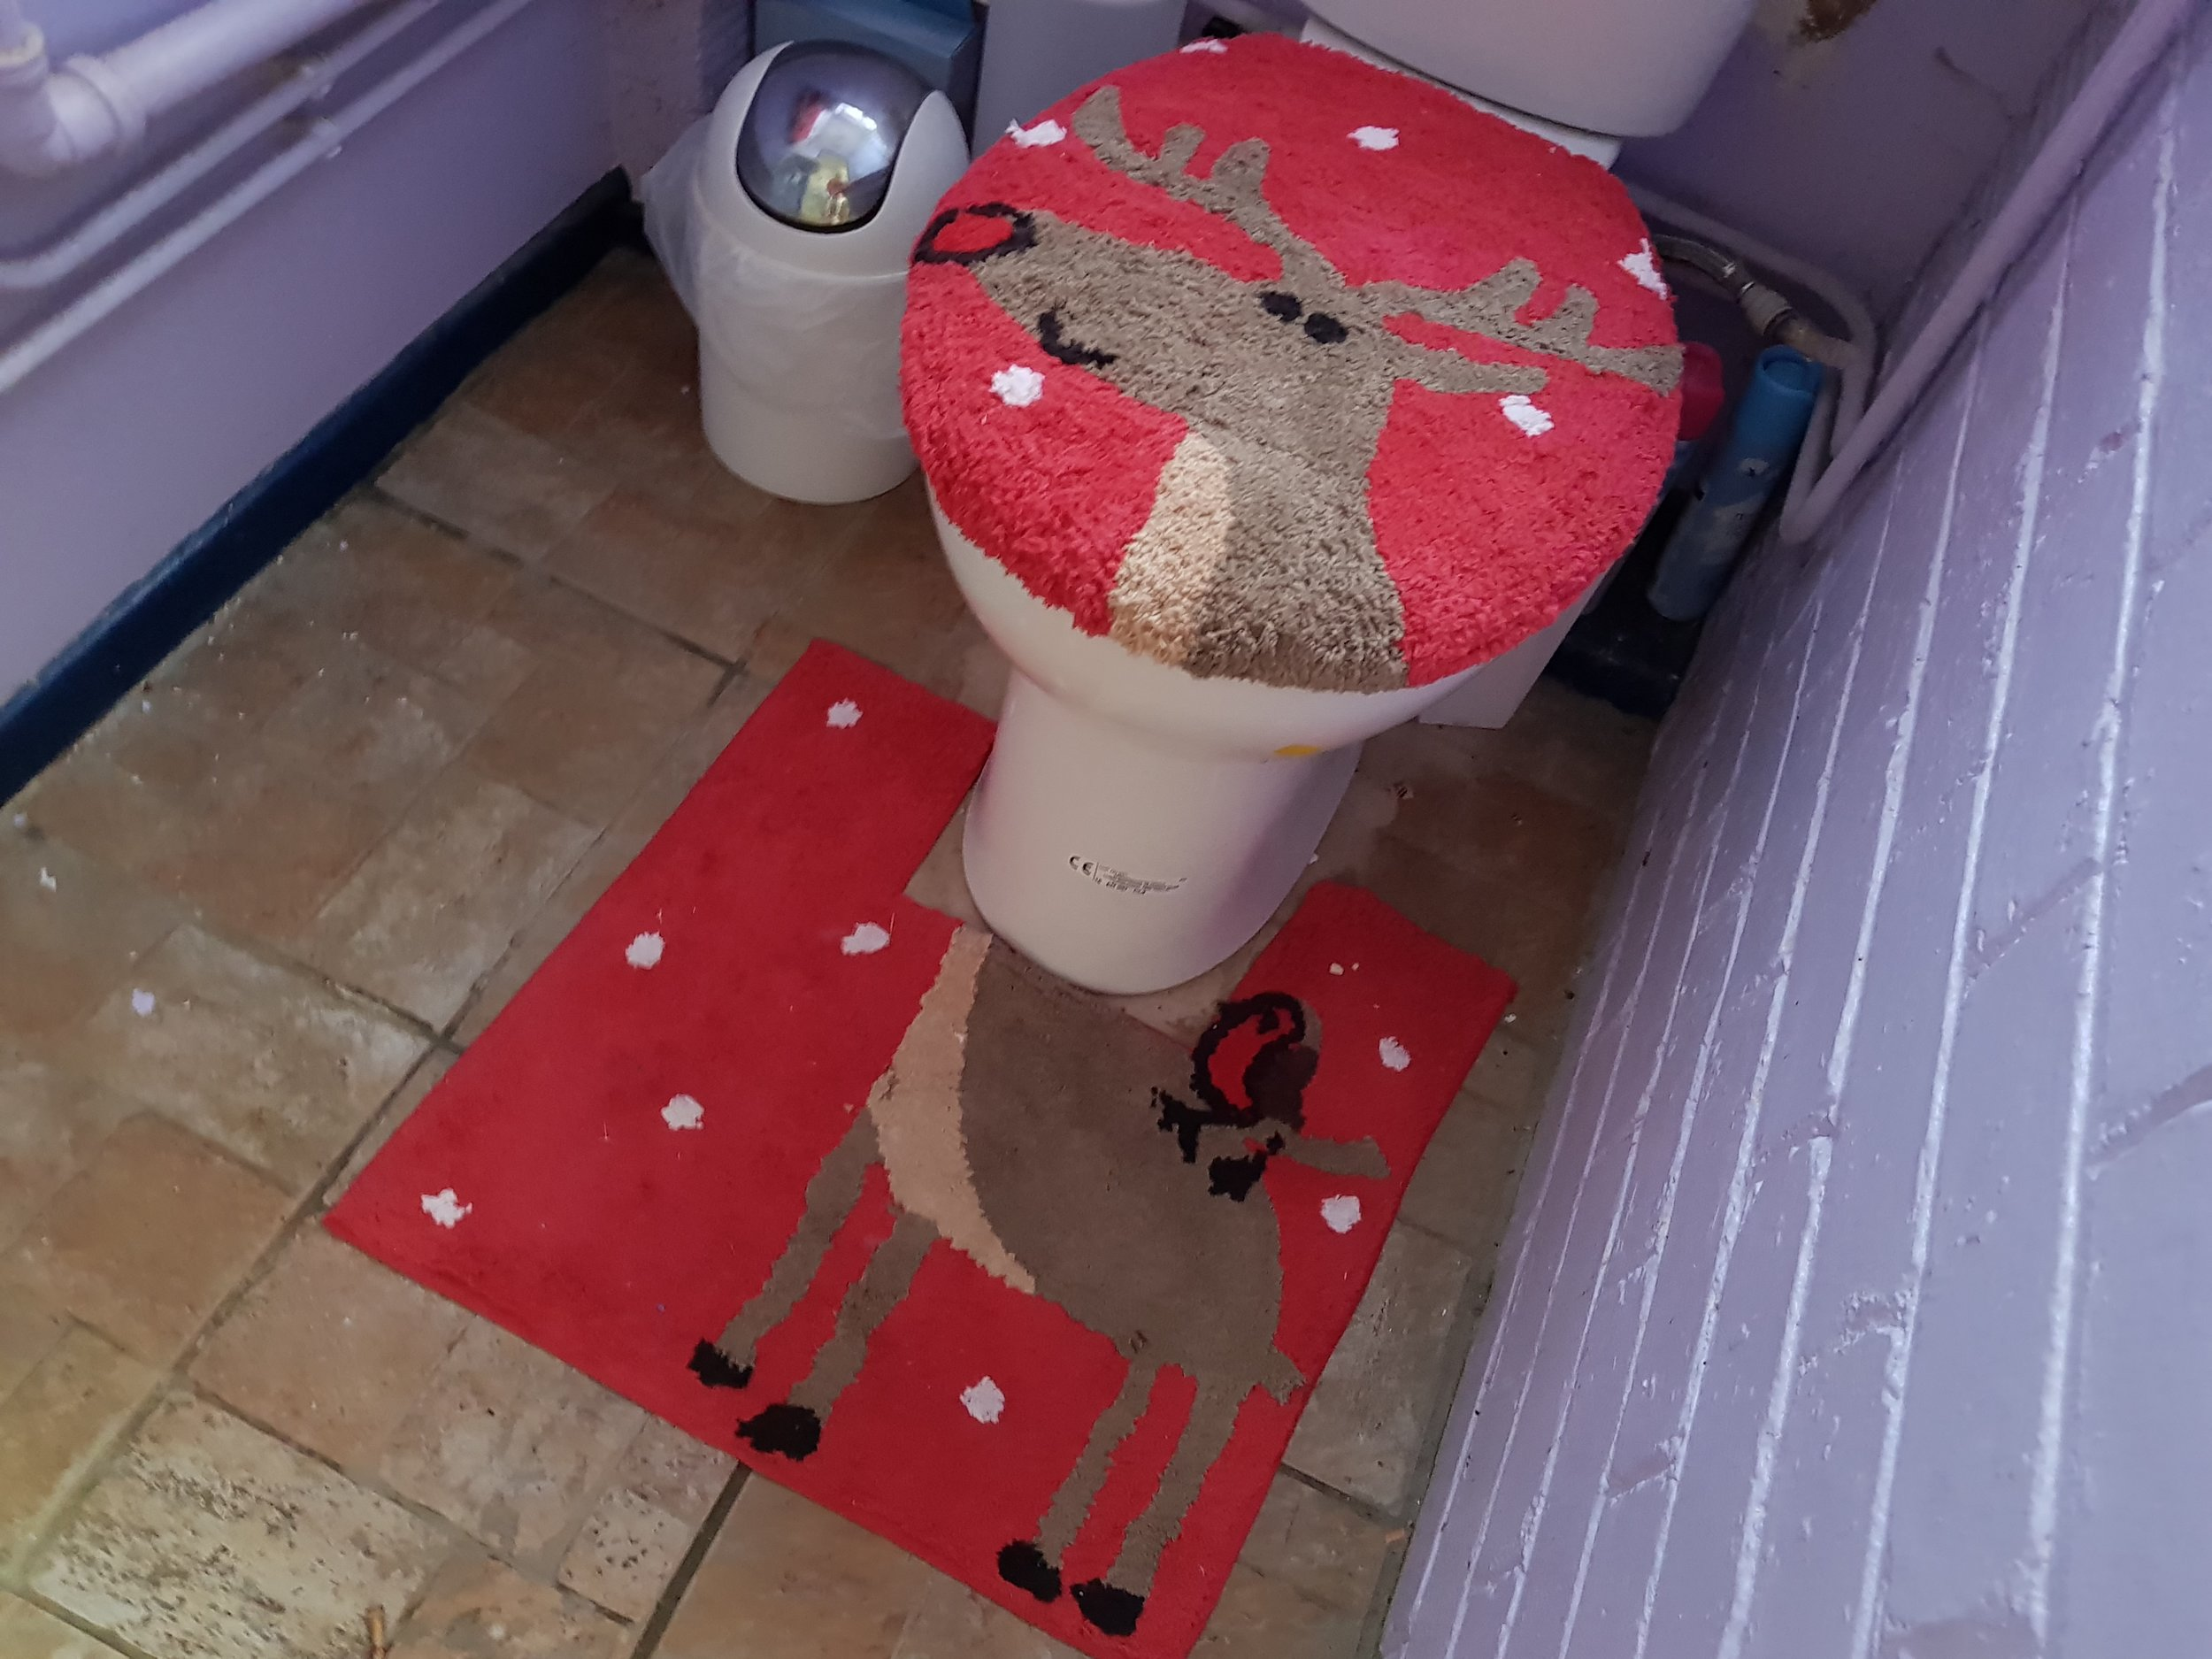 Reindeer toilet seat cover and pedestal mat